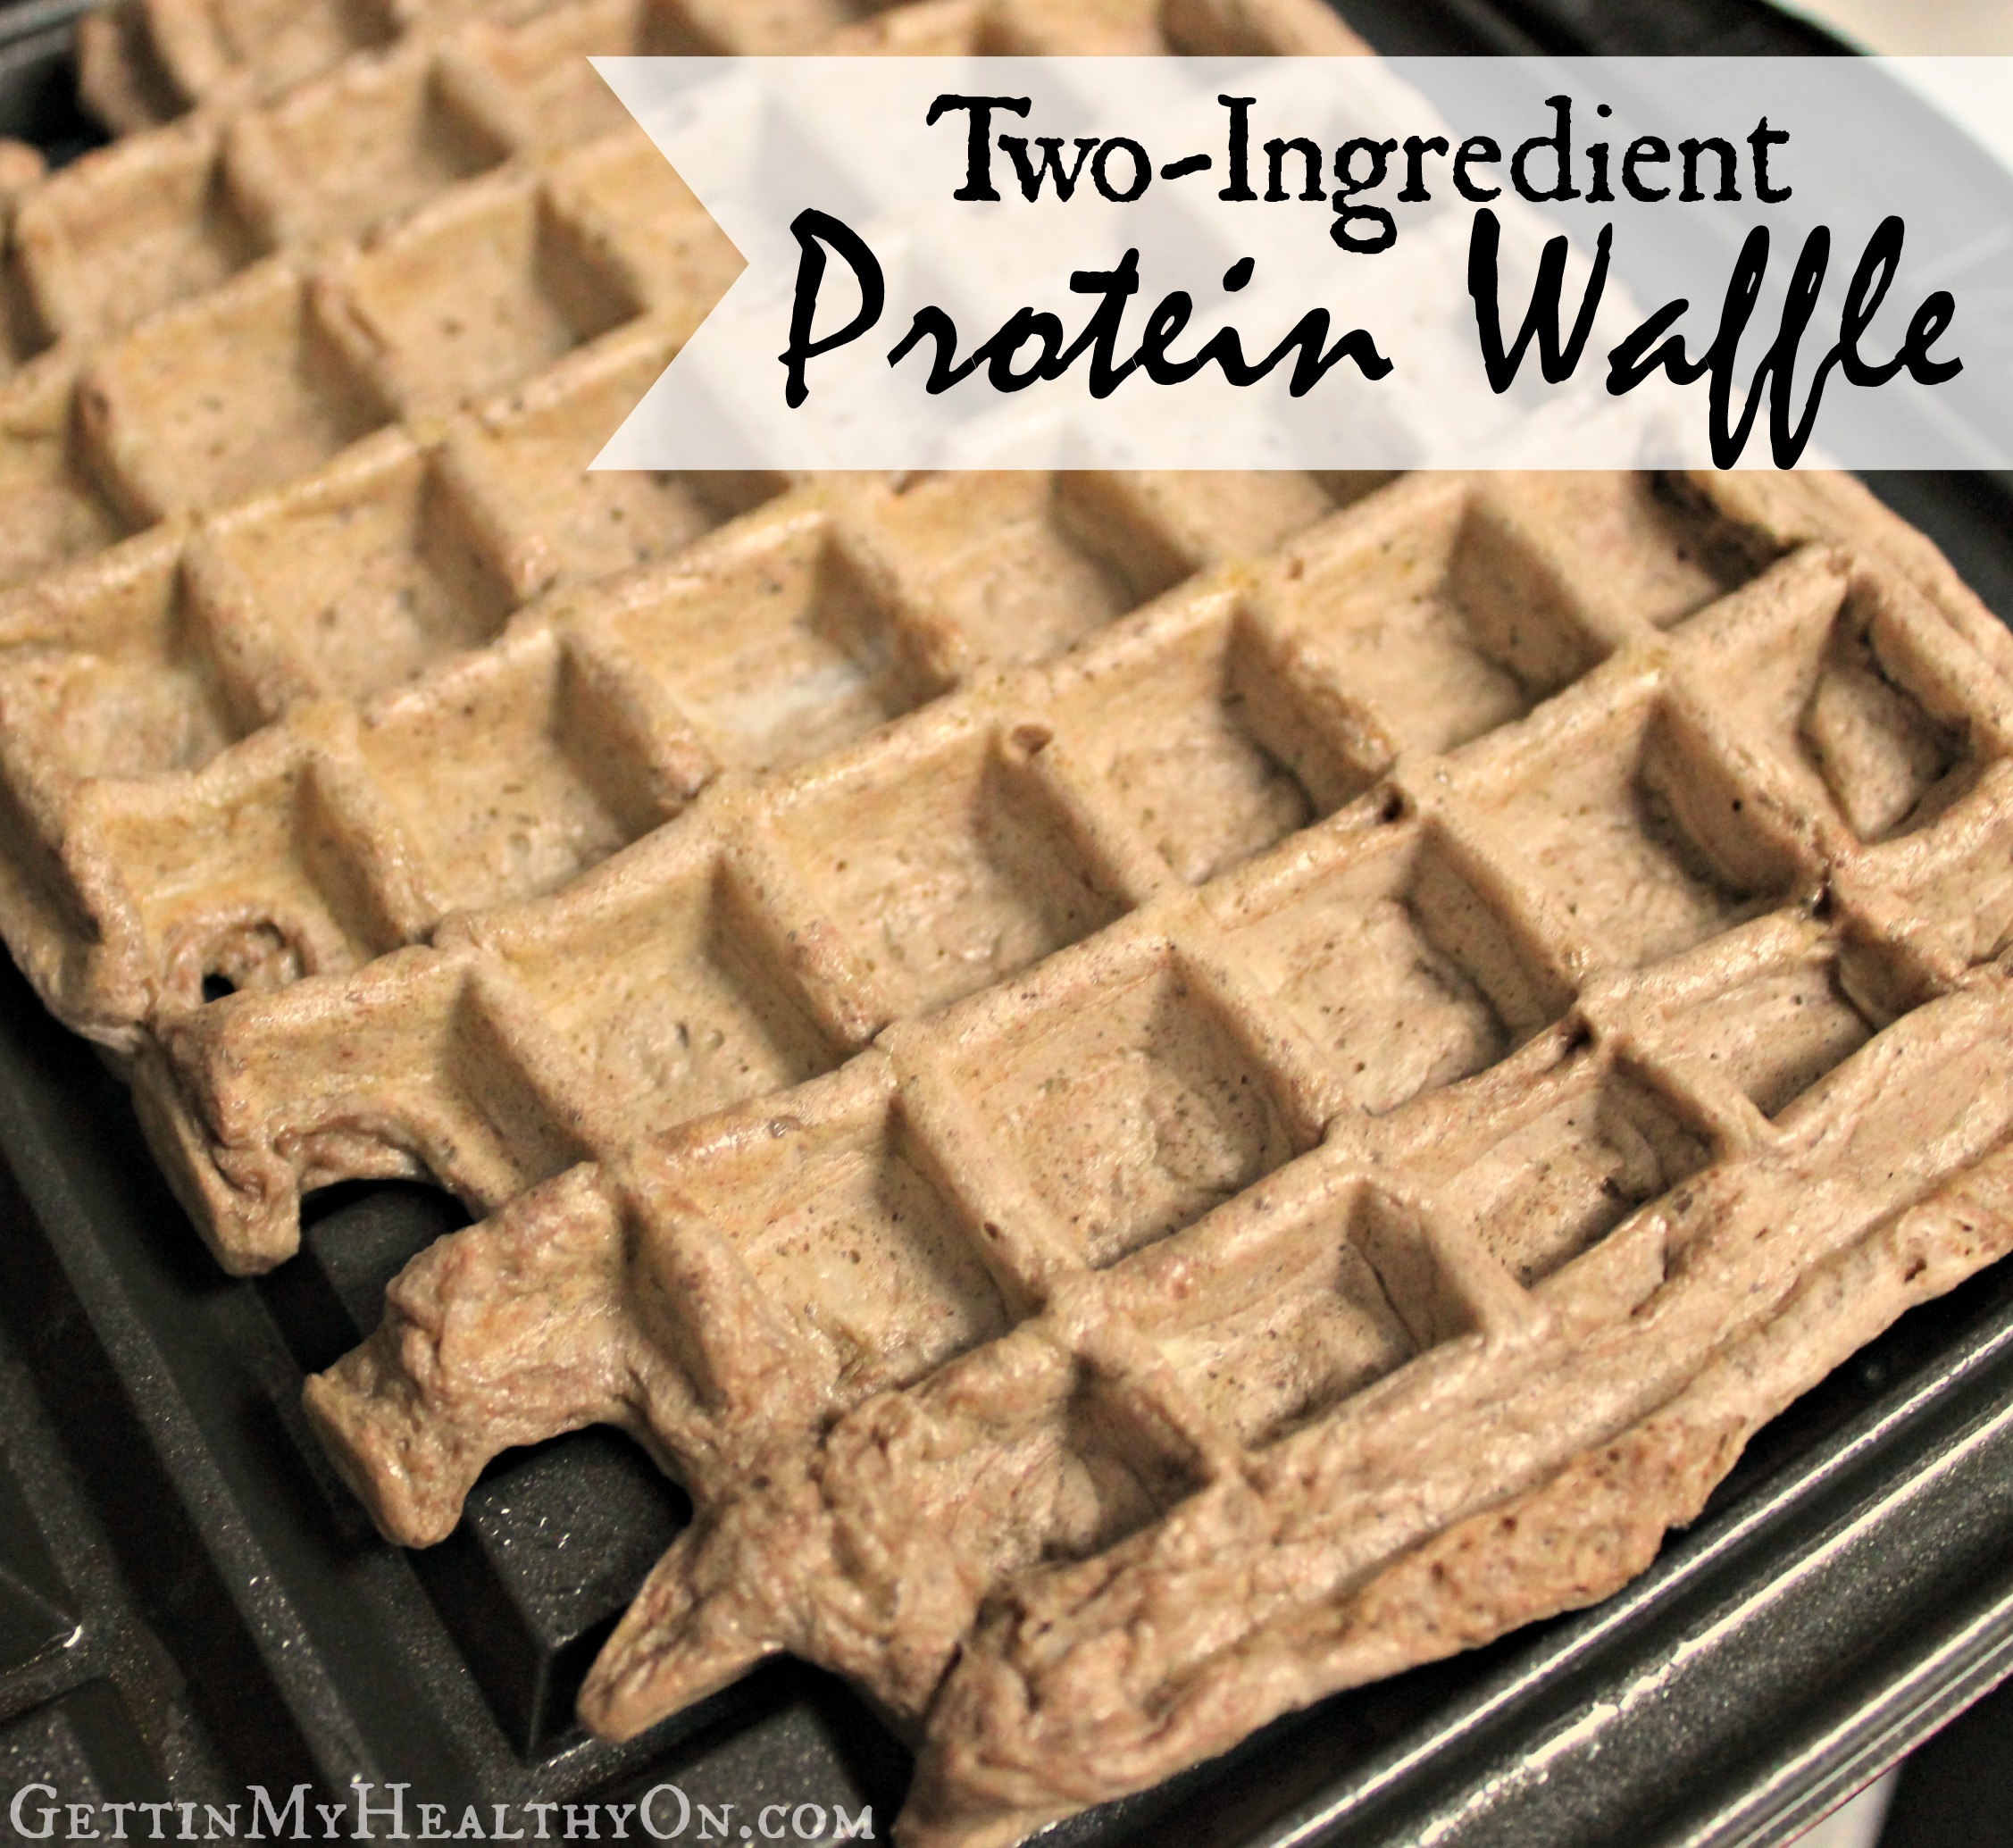 Two-Ingredient Protein Waffle